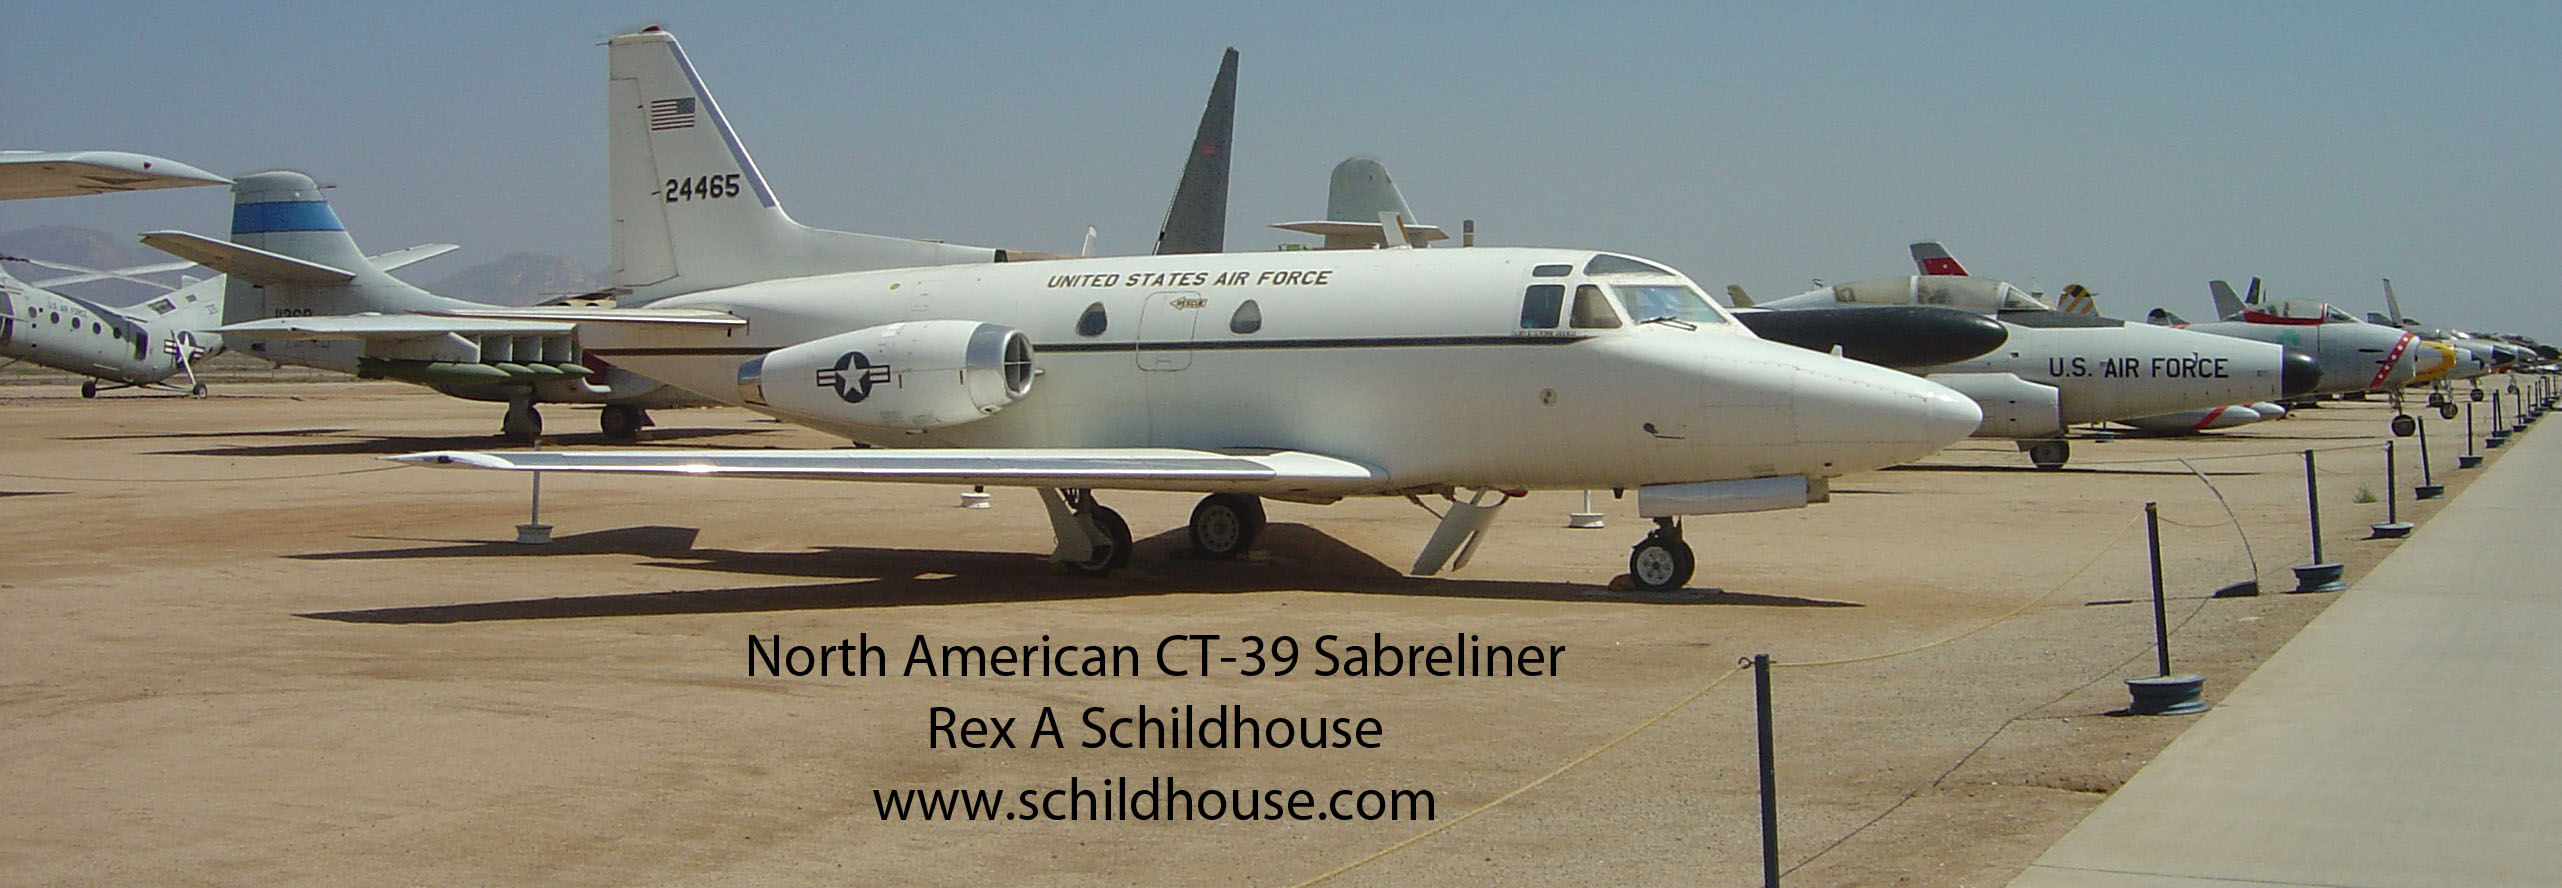 North American CT-39 Sabreliner